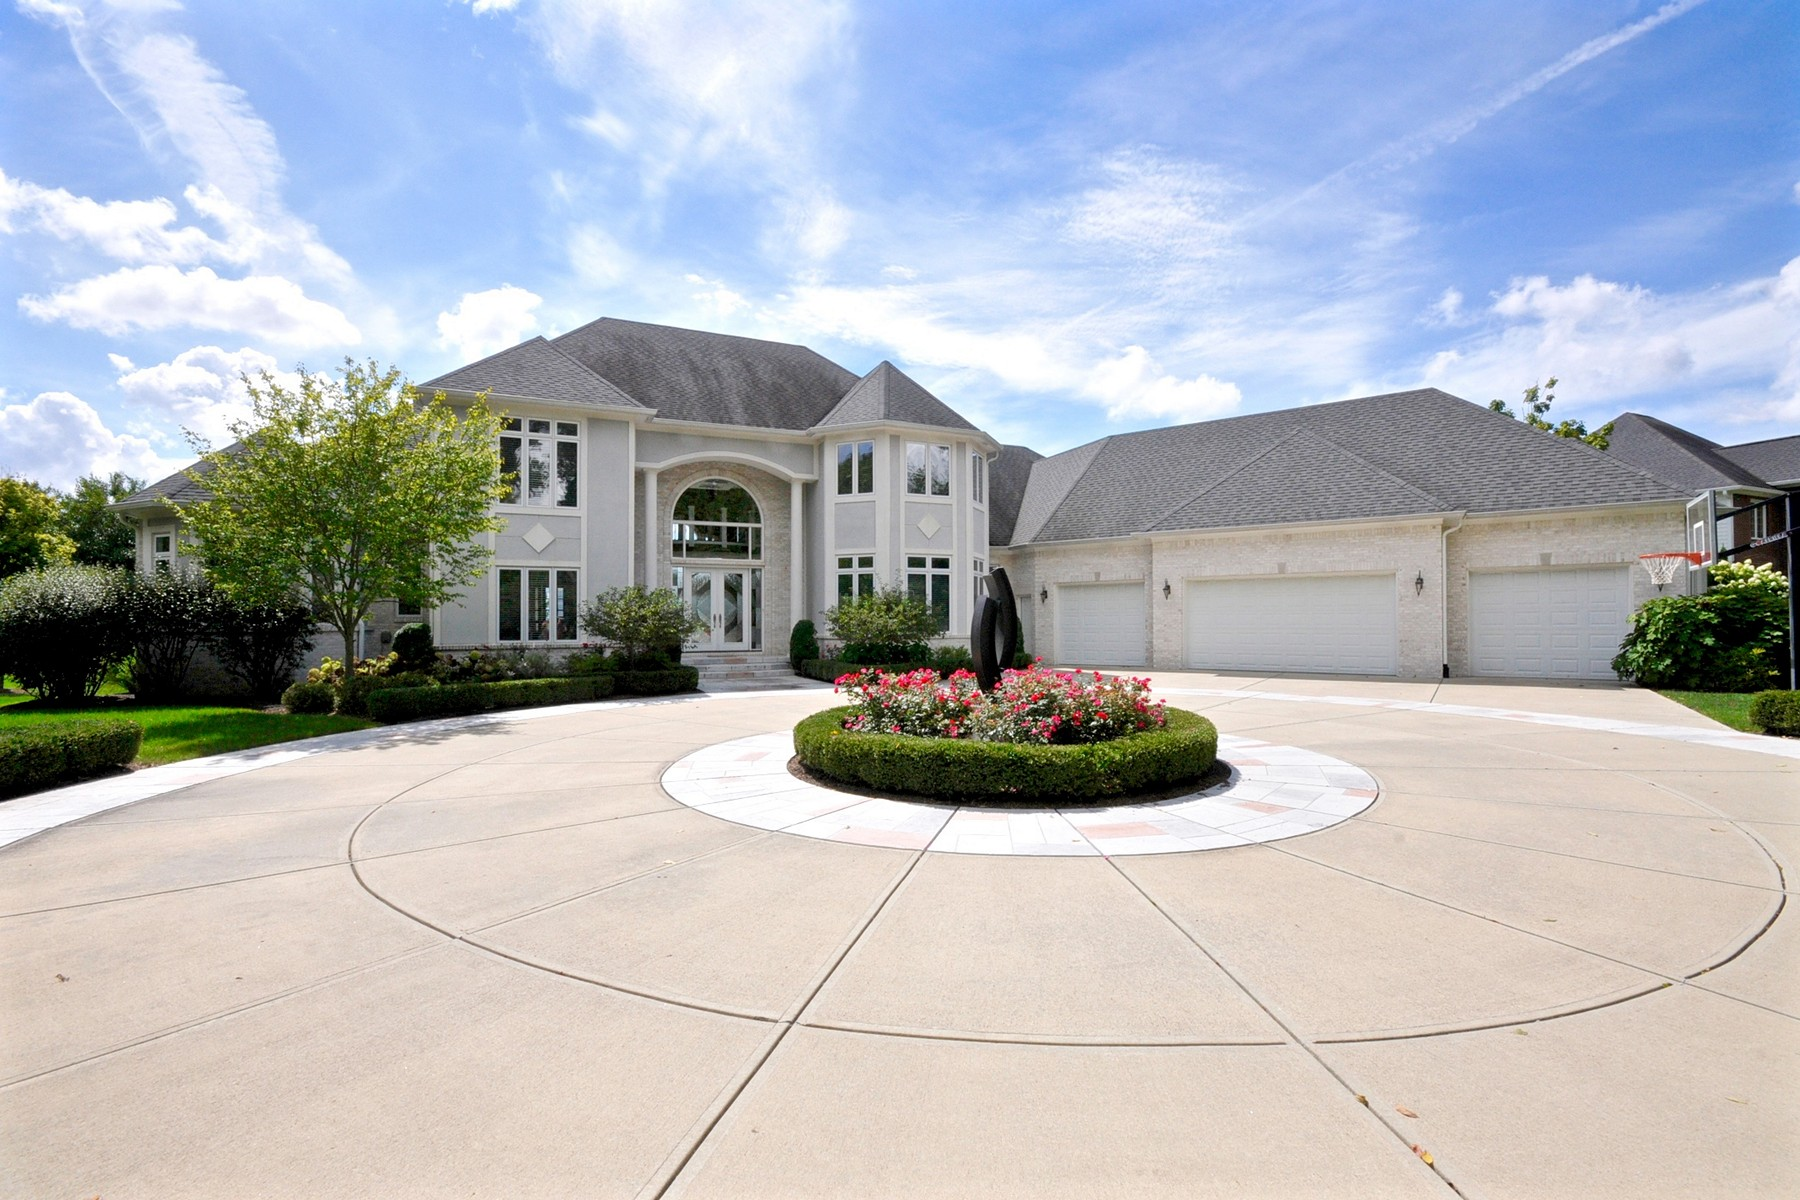 Single Family Home for Sale at Private One Acre Estate 15149 Geist Ridge Drive Fishers, Indiana 46040 United States